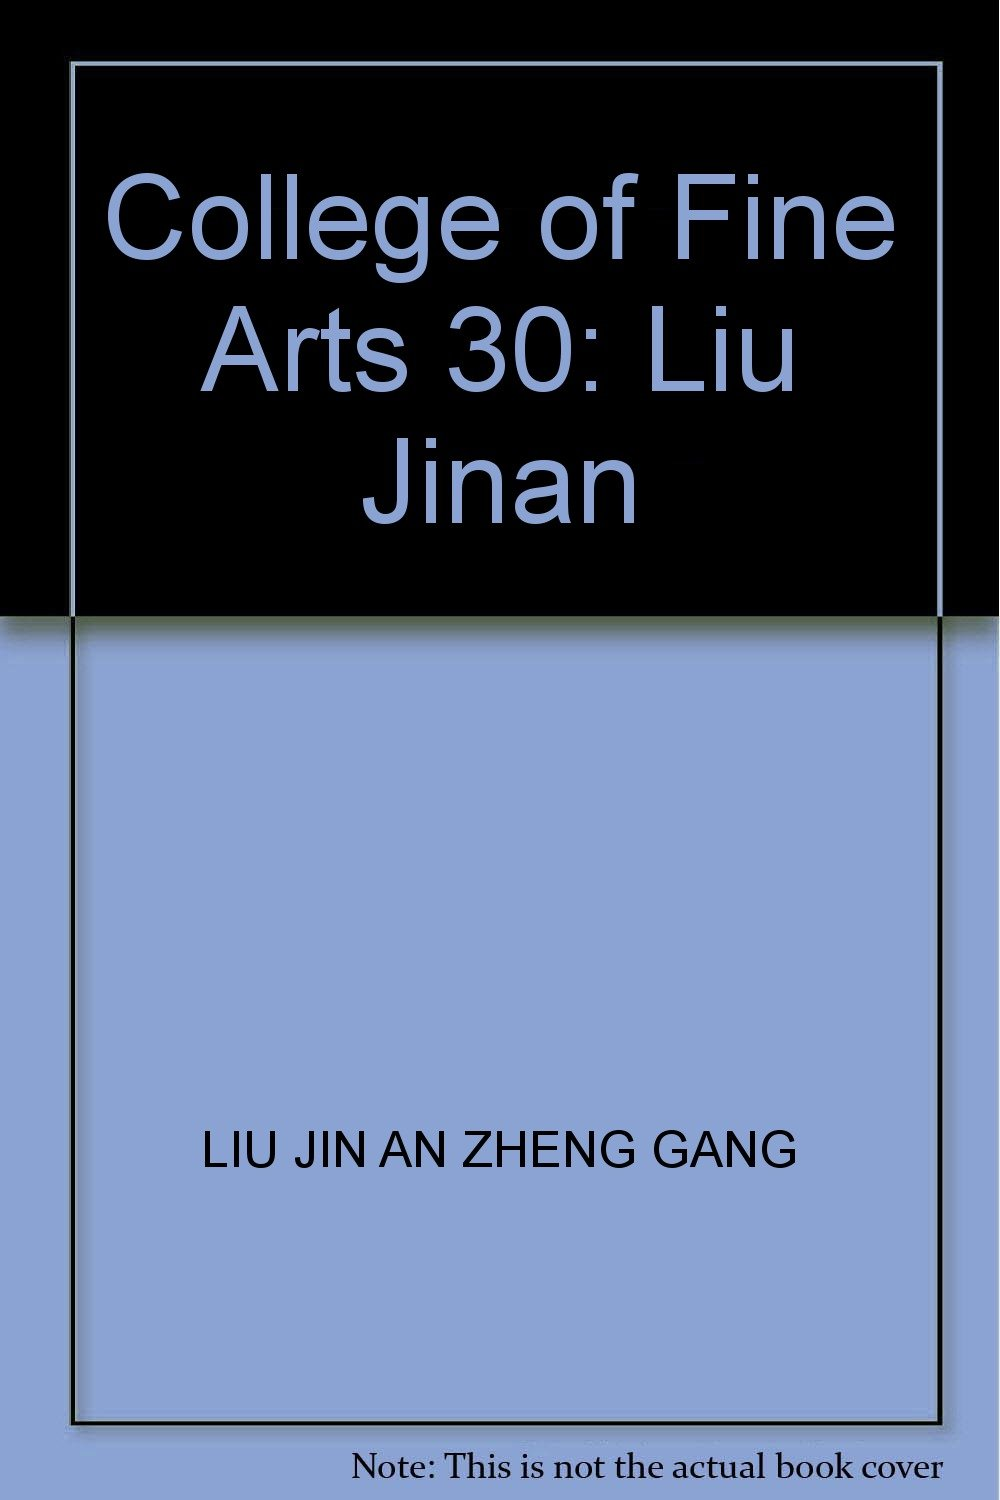 Download College of Fine Arts 30: Liu Jinan PDF